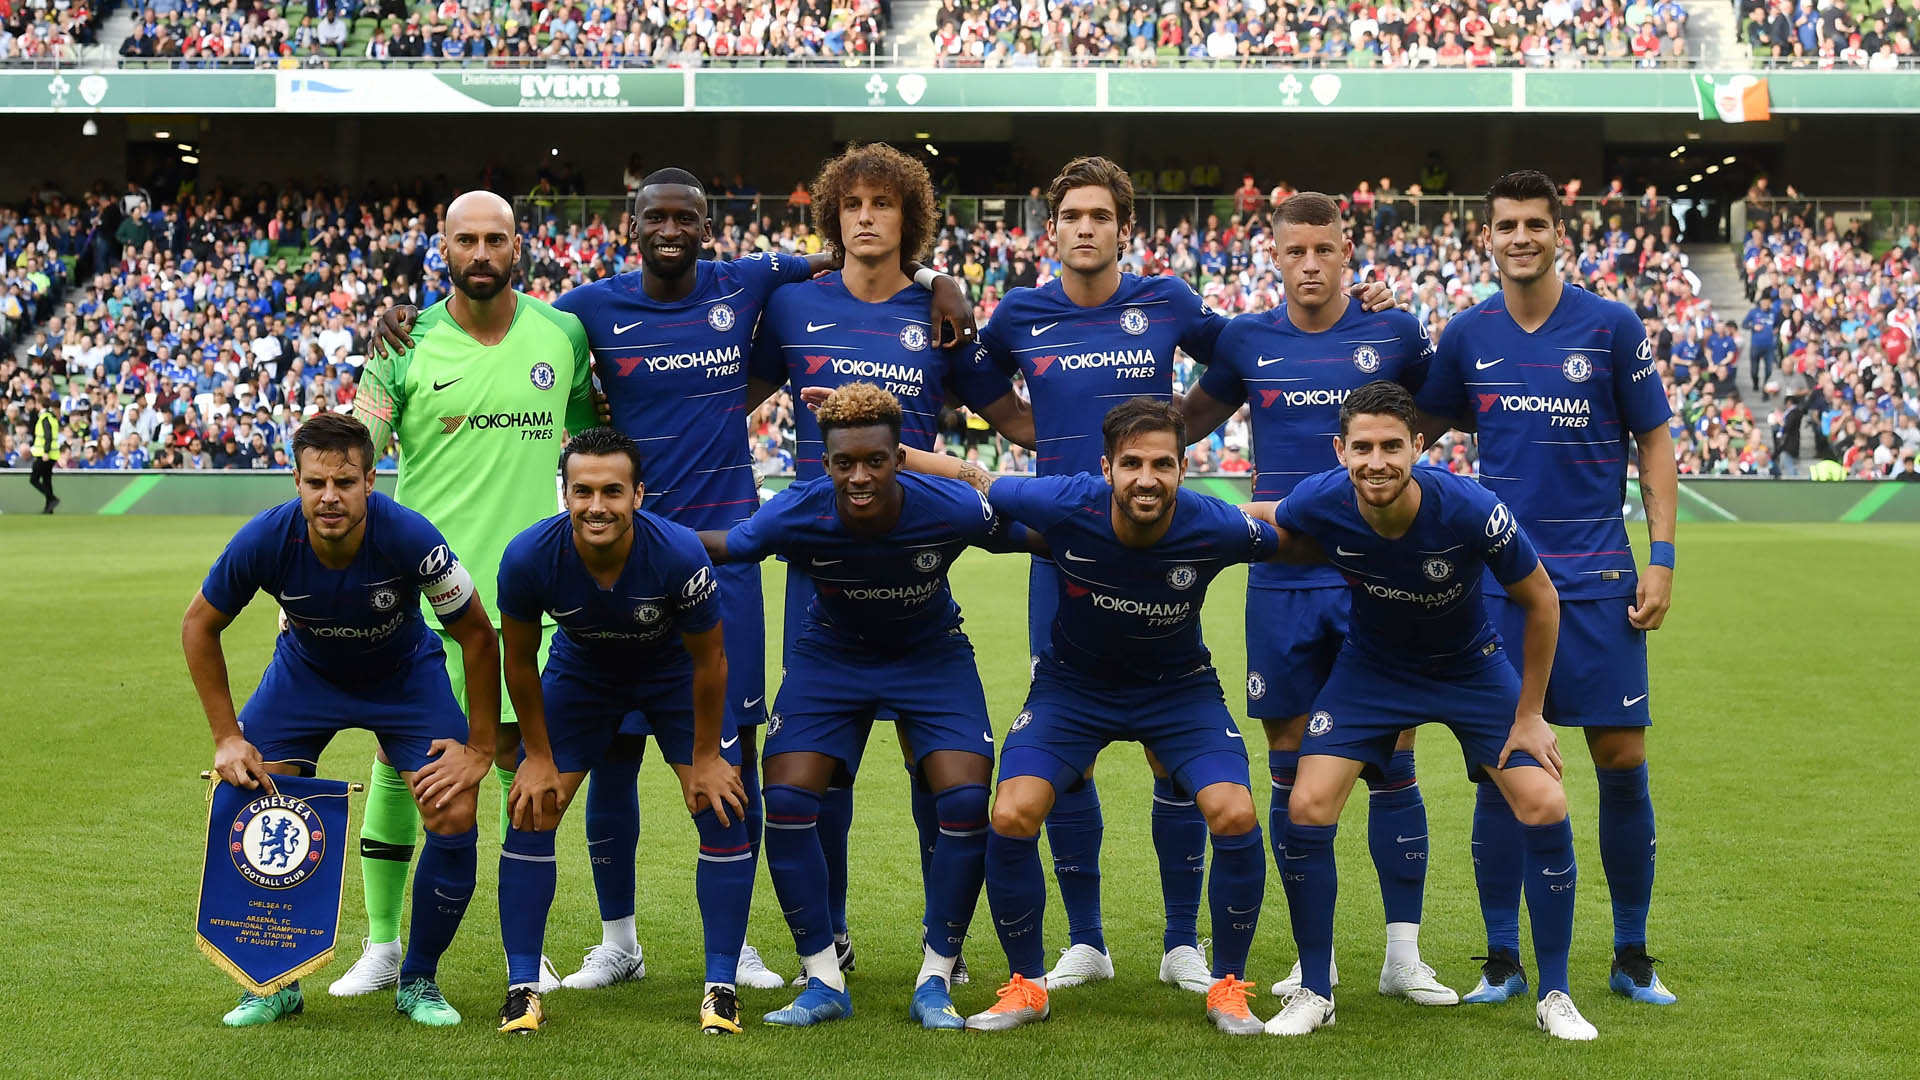 Chelsea Vs Manchester City Fc: Chelsea Vs. Manchester City Live Im TV Und LIVE-STREAM